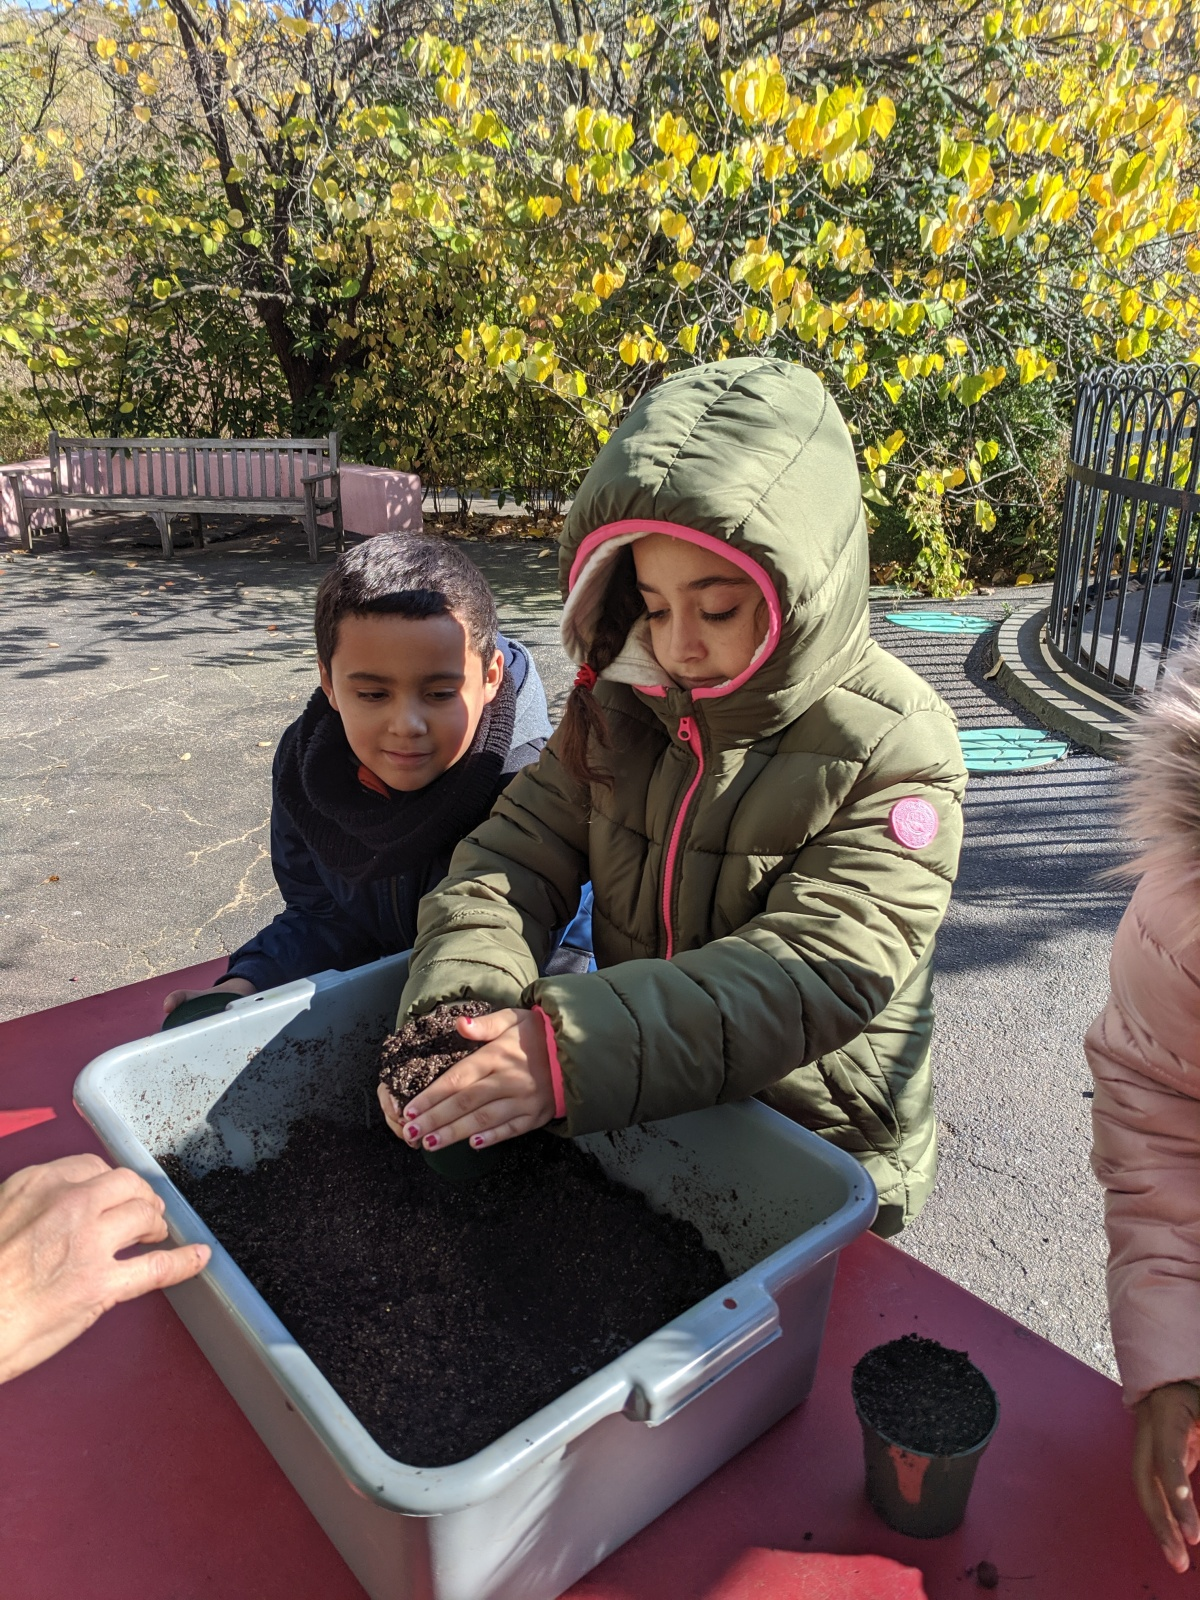 kids working with soil in the park